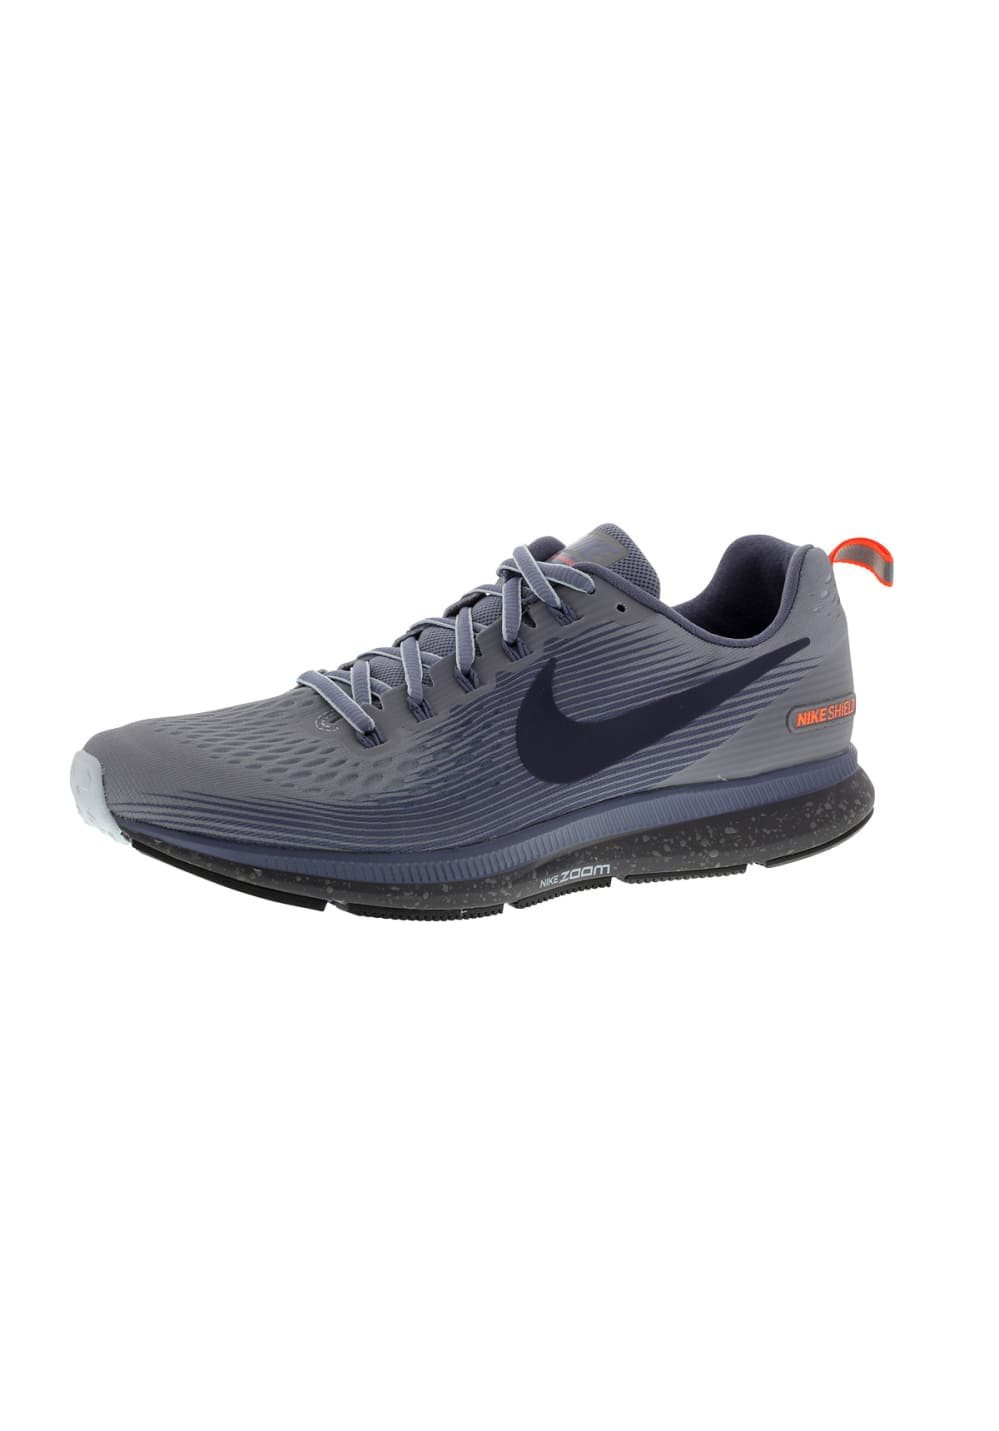 c2a485d42dc Next. -60%. This product is currently out of stock. Nike. Air Zoom Pegasus  34 Shield - Running shoes for Women